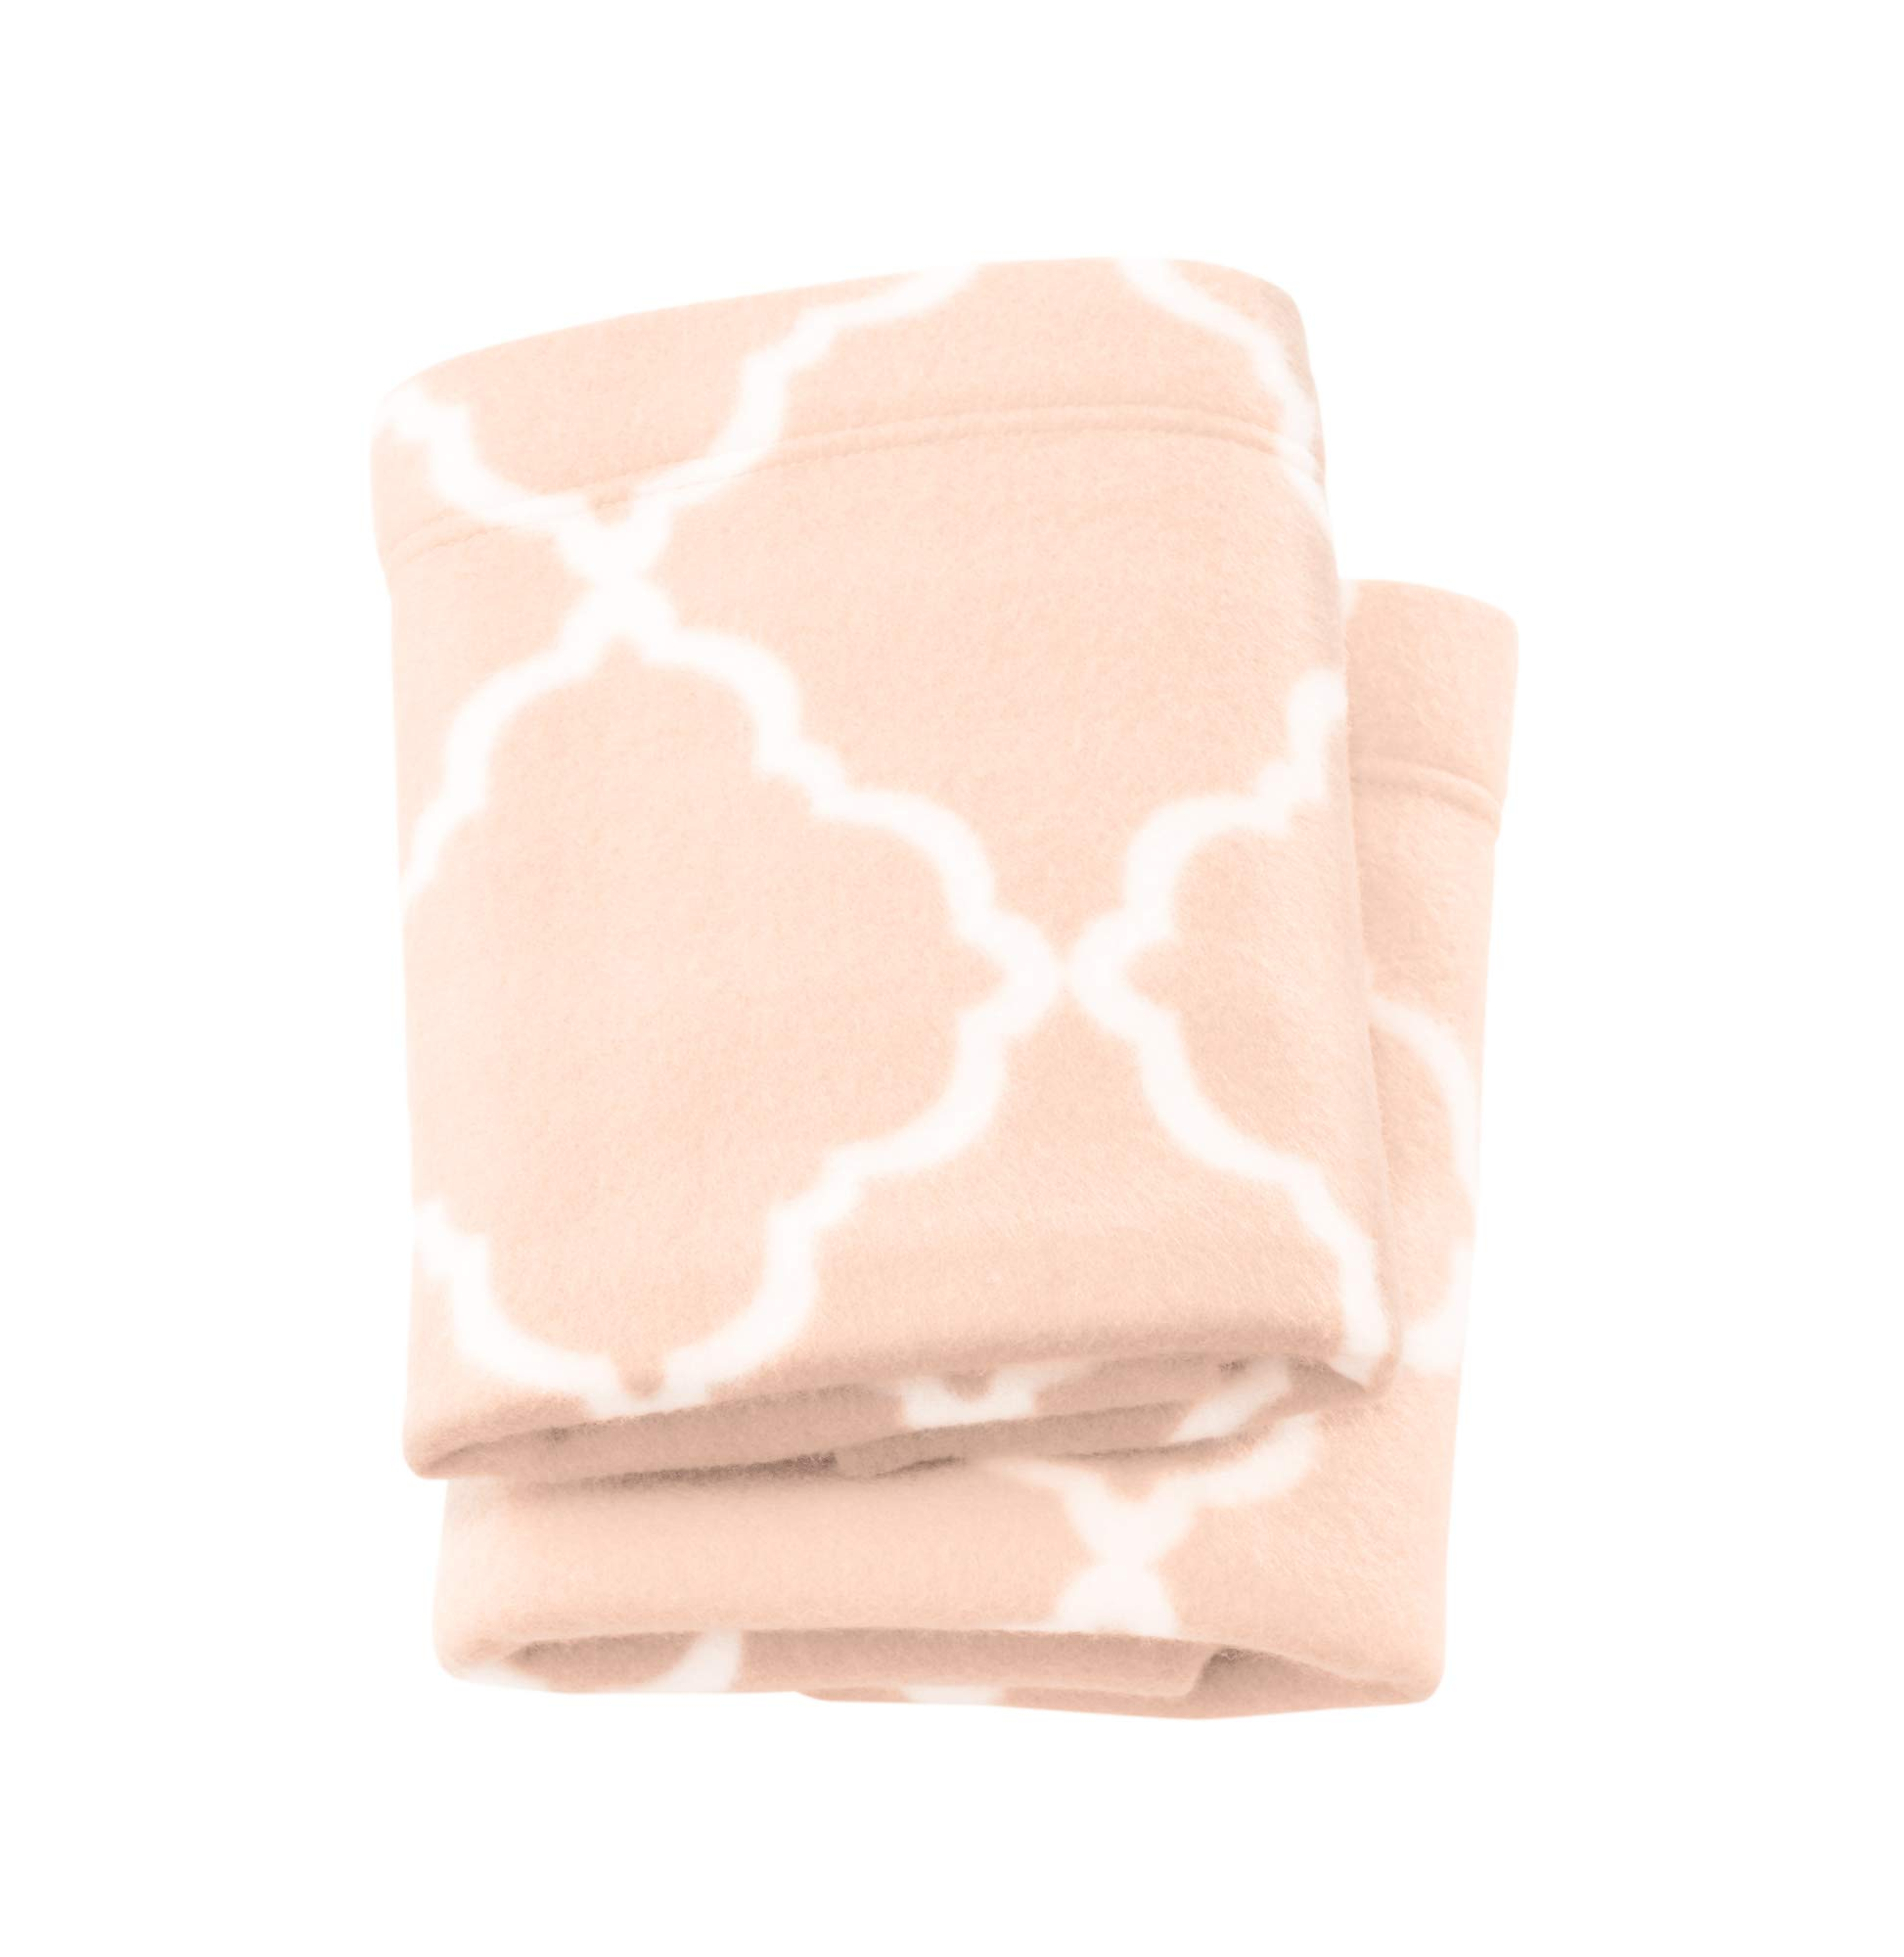 Super Soft Extra Plush Fleece Pillowcases. Cozy, Warm, Durable, Smooth, Breathable Winter Pillowcases with Cloud Lattice Pattern. Dara Collection (King, Blush Pink)